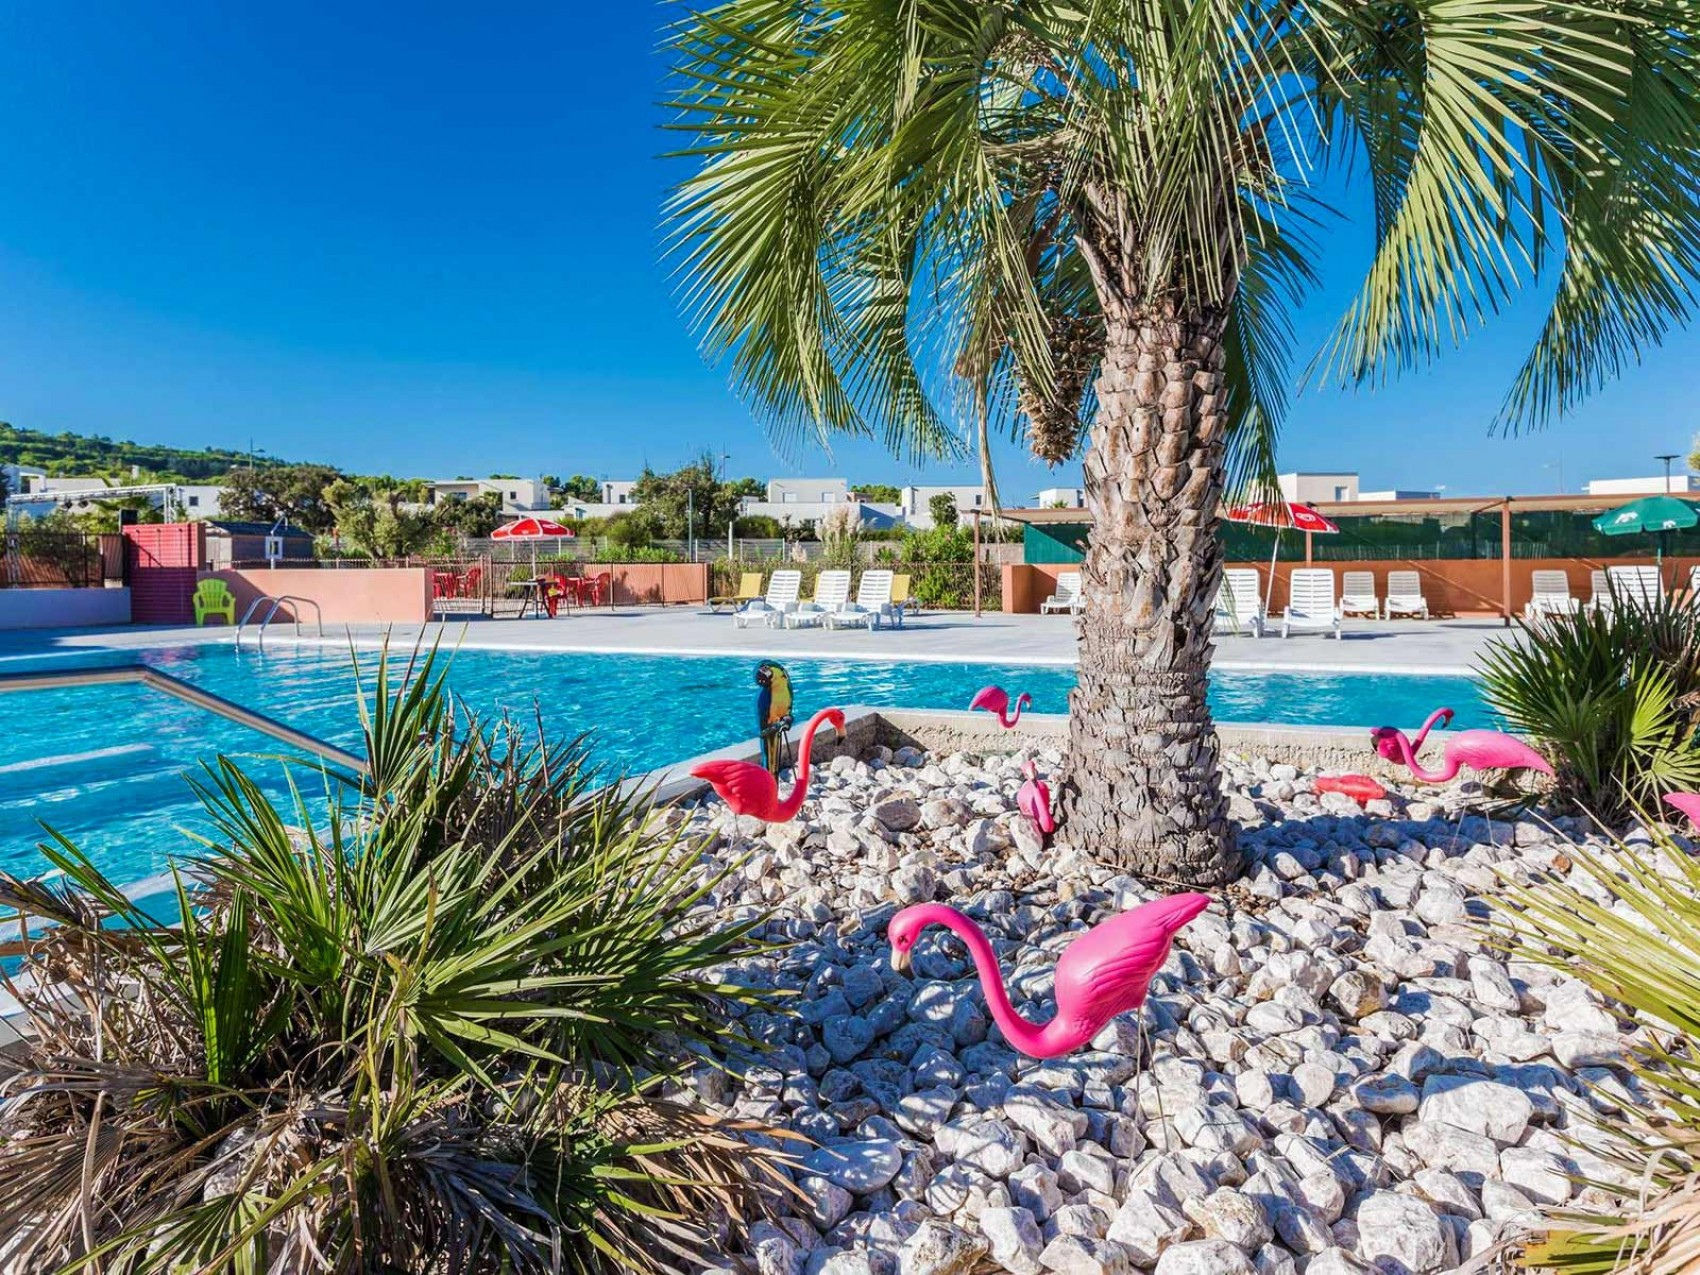 Camping swimming pool Agde, Languedoc-Roussillon